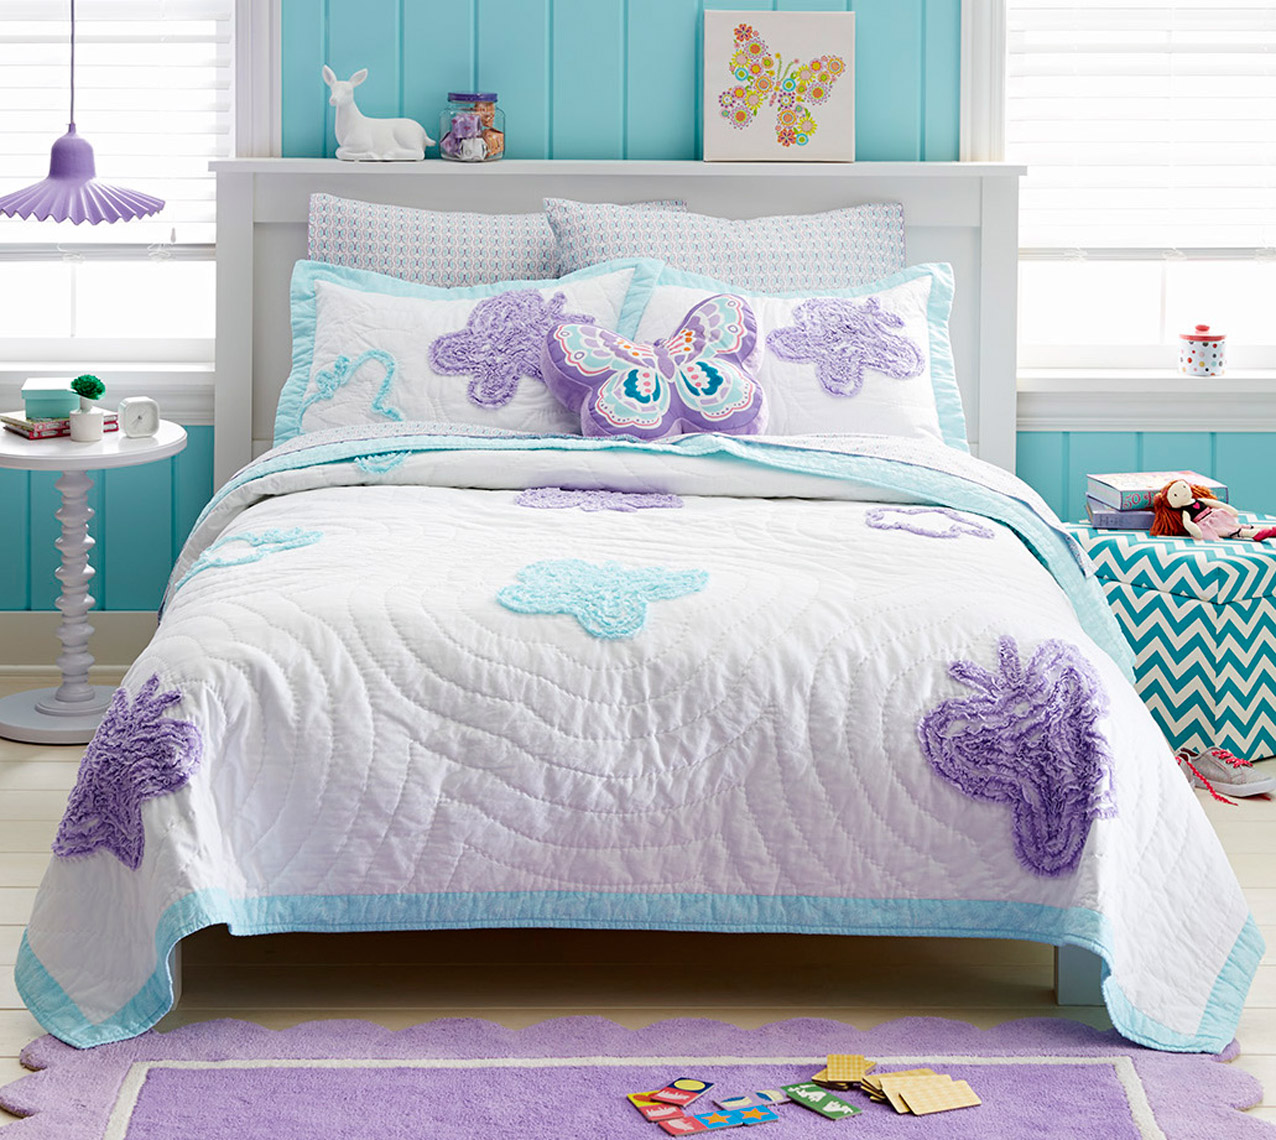 Circo Bath Circo Bedding